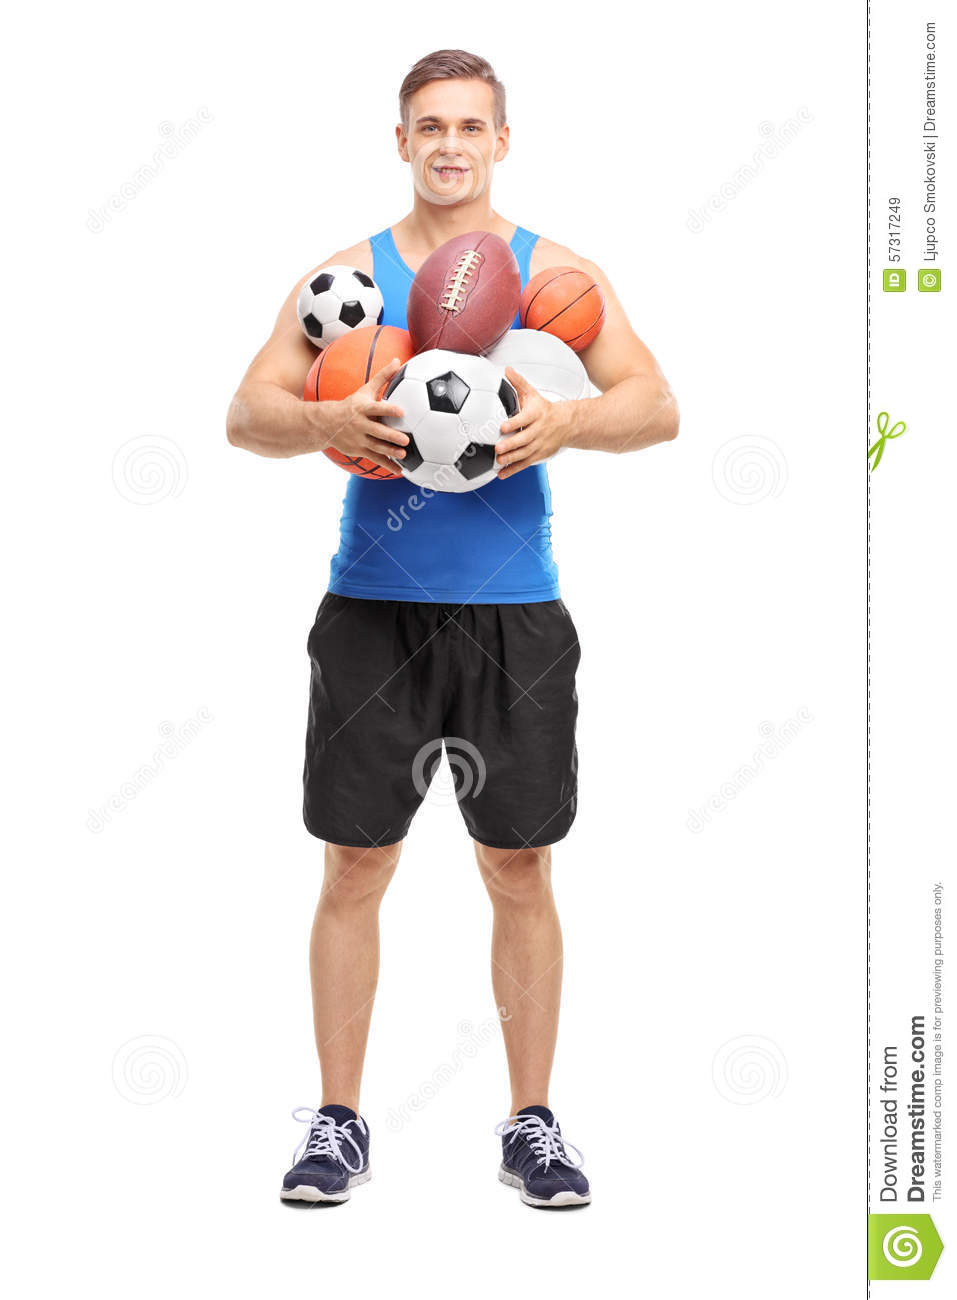 Athlete holding a bunch of different sports balls